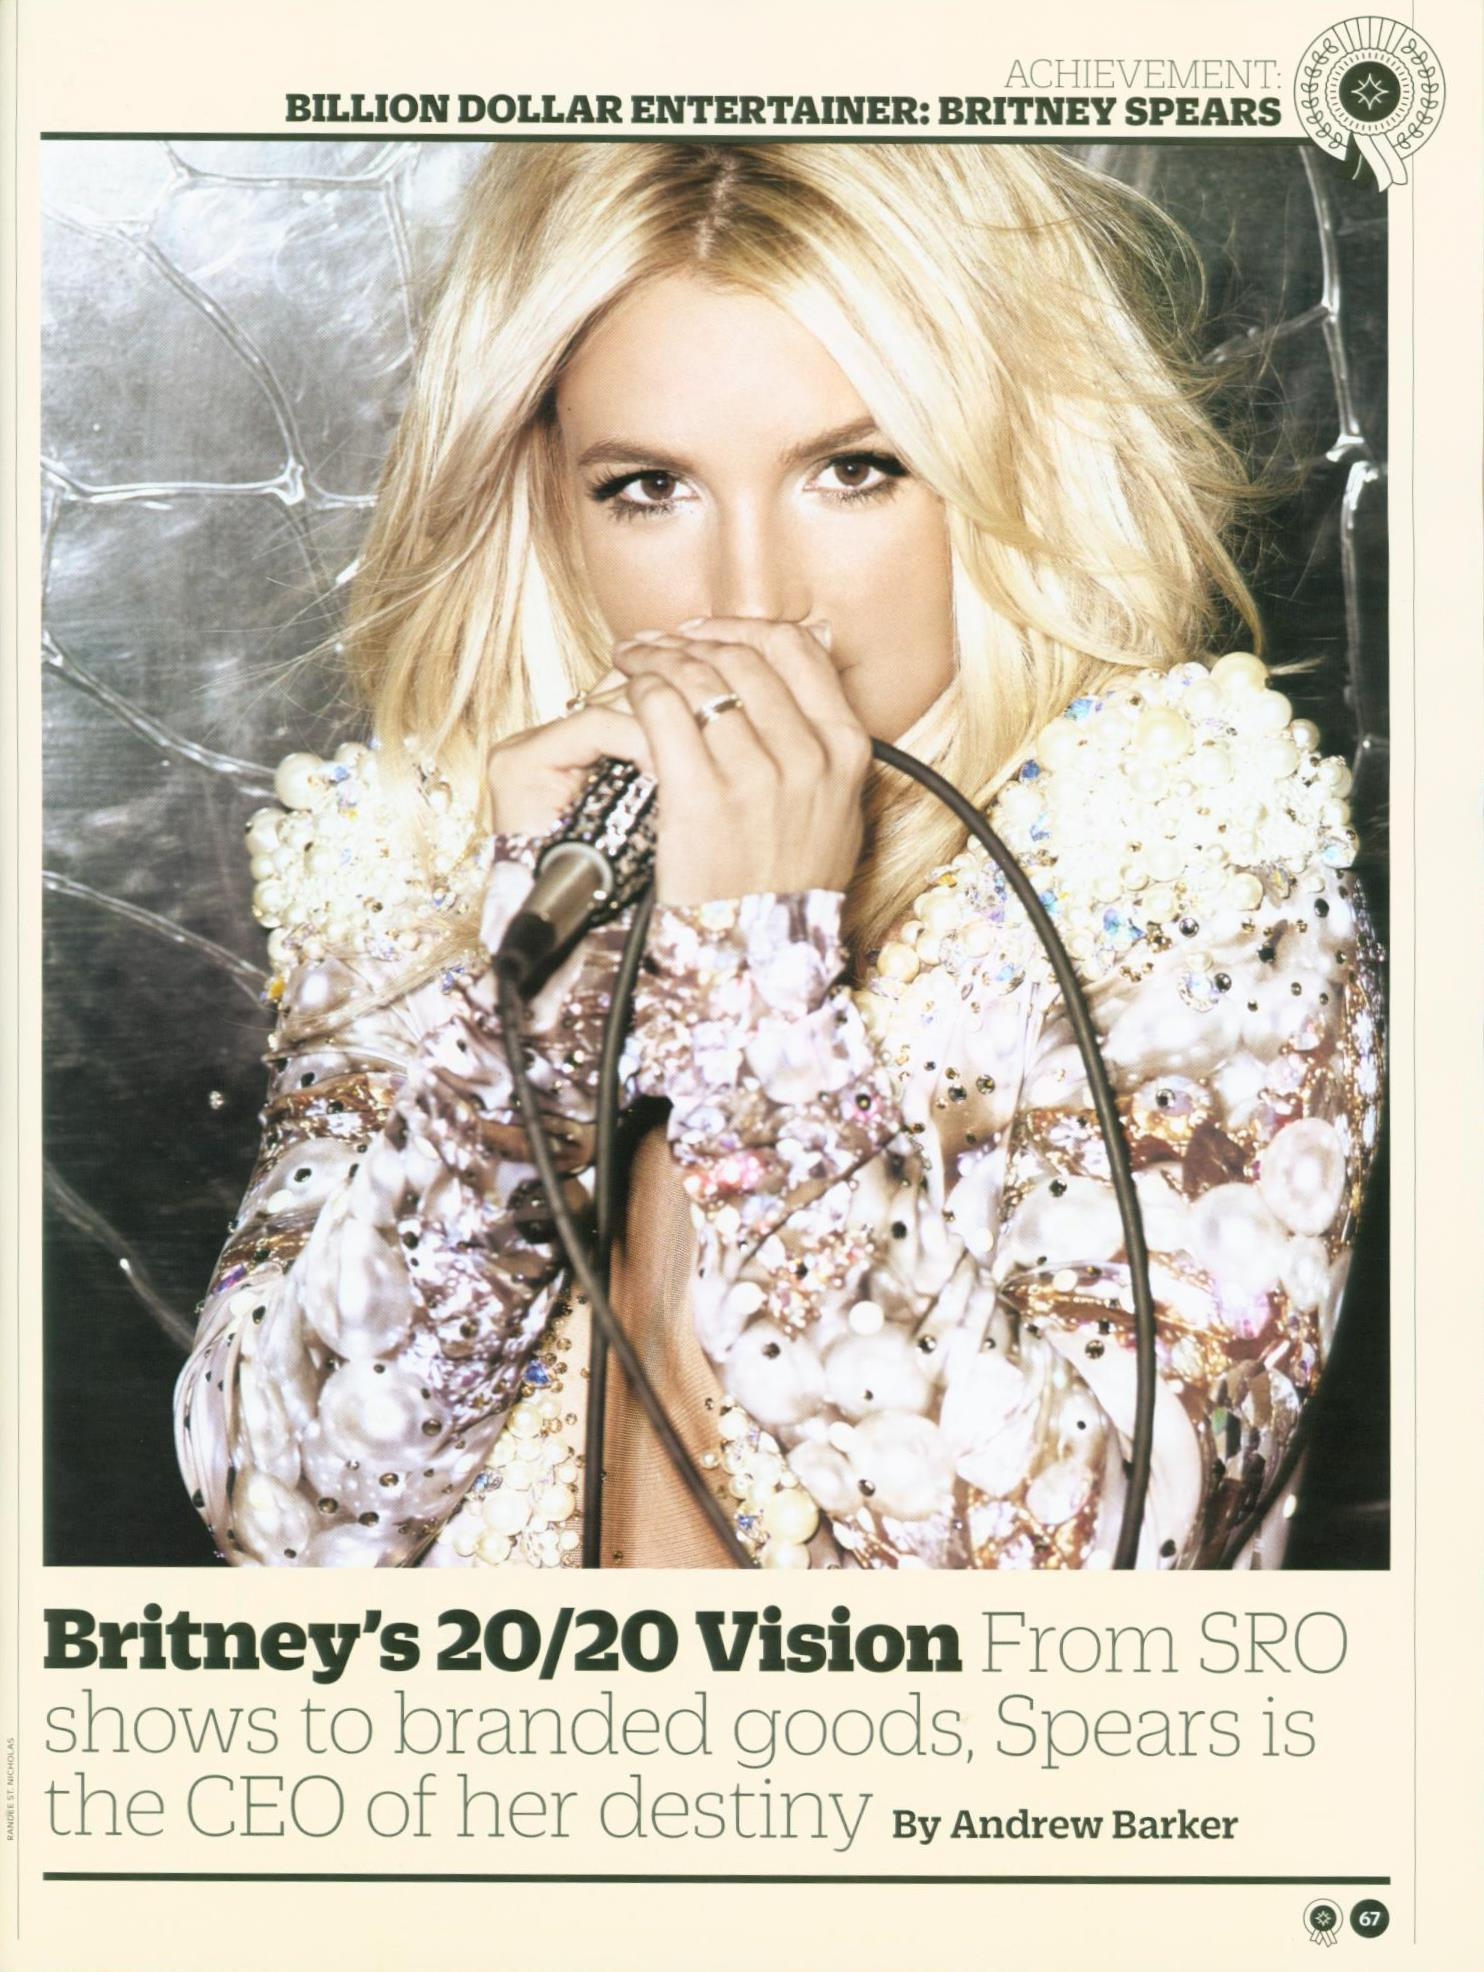 Britney Spears on Twitter: Thank you @Variety & my wonderful team! xo http://t.co/LbdJTMDGnz